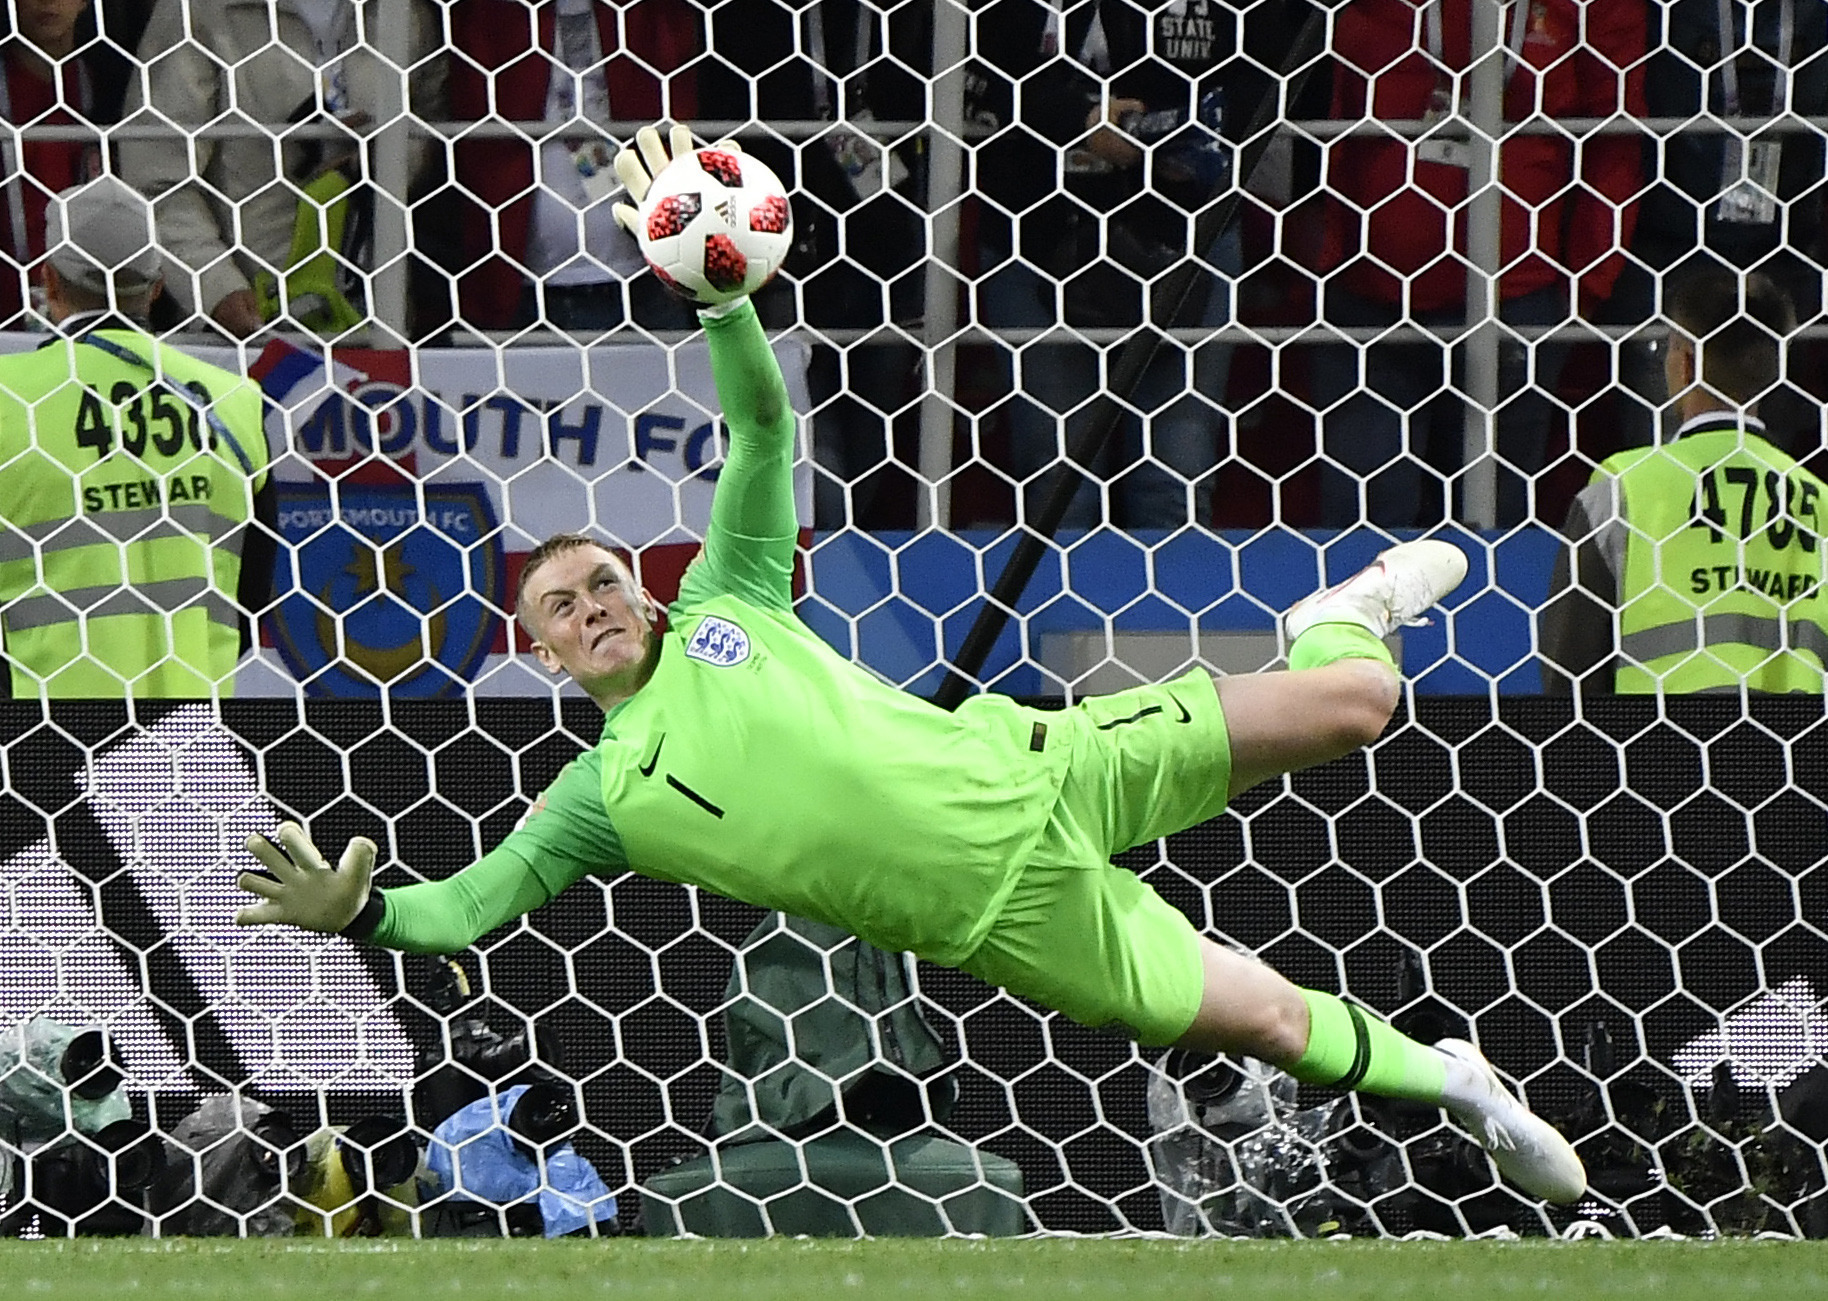 Jordan Pickford saving a penalty against Colombia in Moscow (Image Credit: PA)